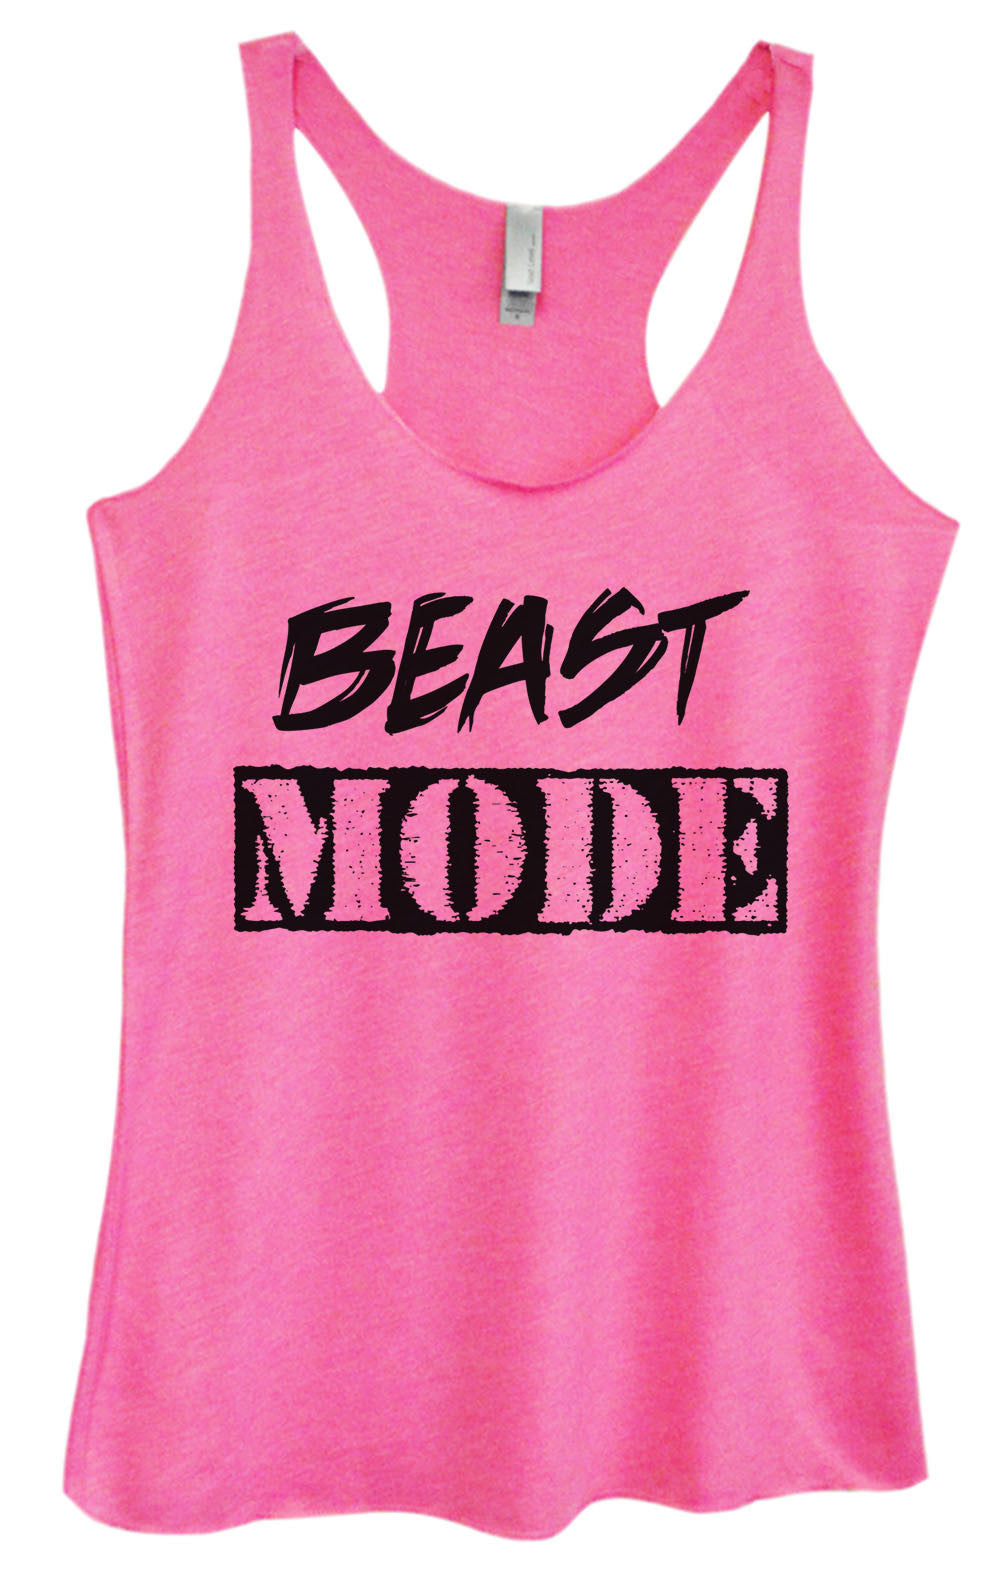 Womens Fashion Triblend Tank Top - Beast Mode - Tri-823 - Funny Shirts Tank Tops Burnouts and Triblends  - 1